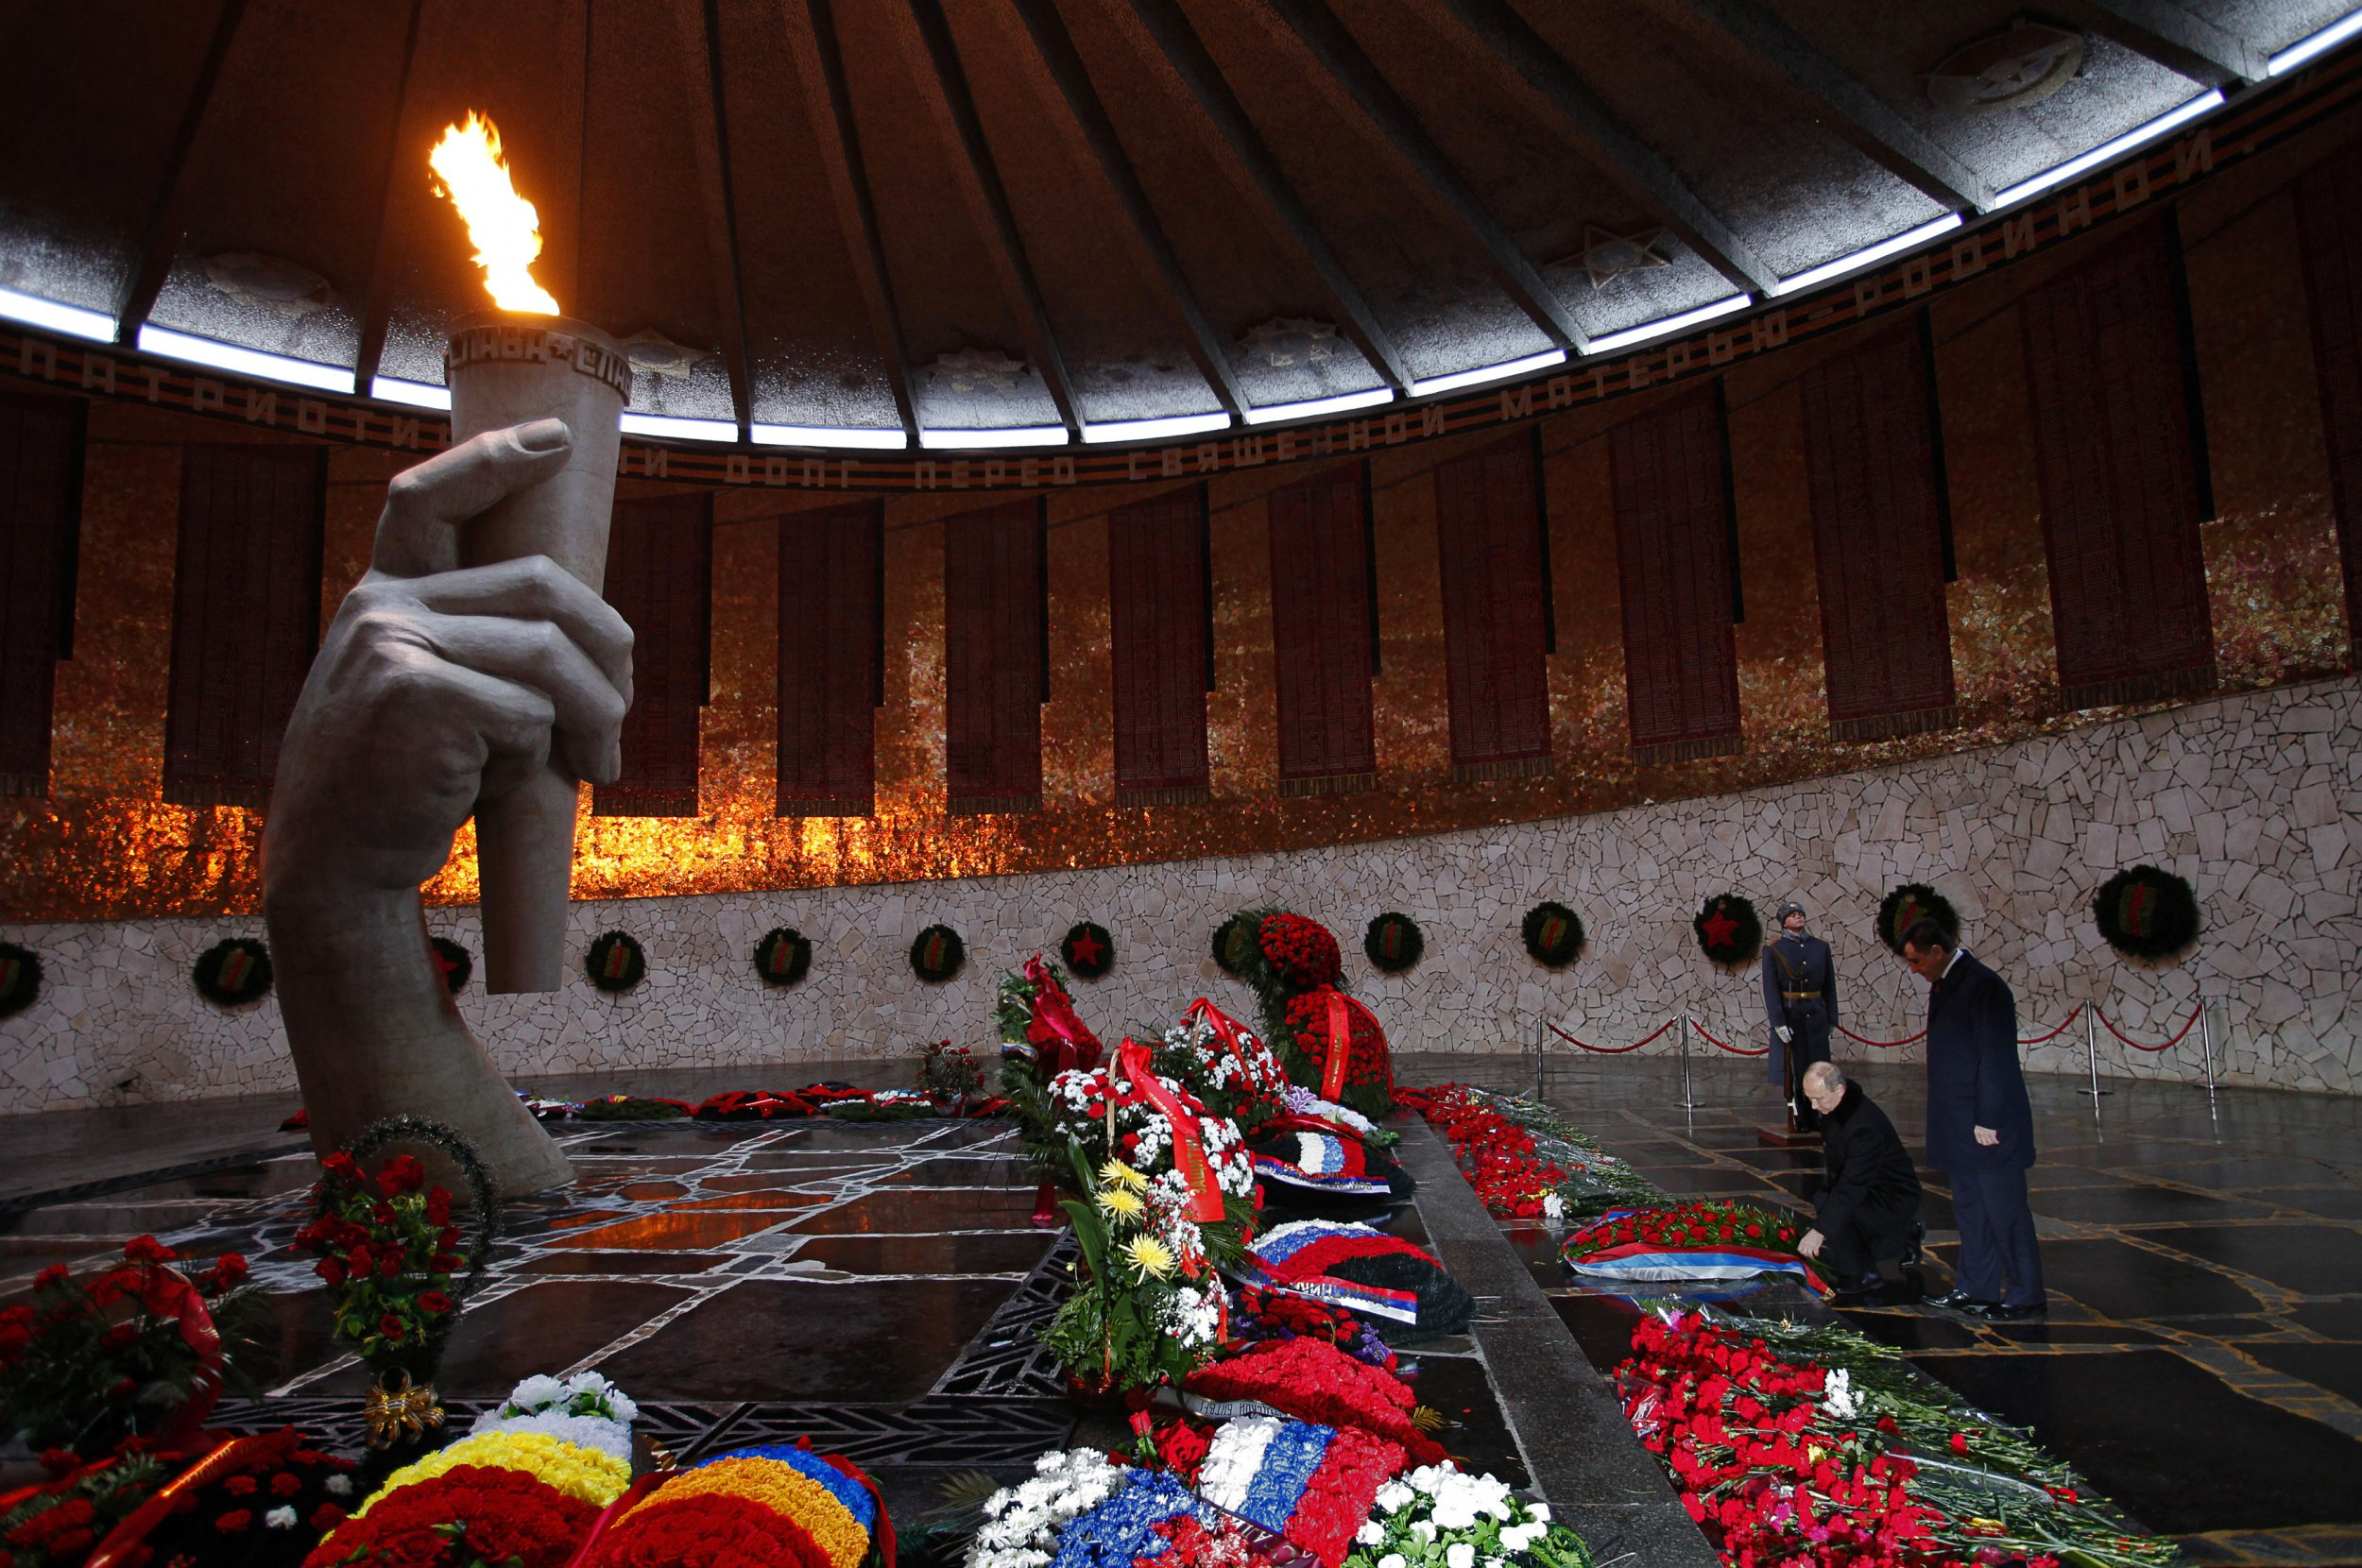 Putin lays a wreath at the Stalingrad memorial